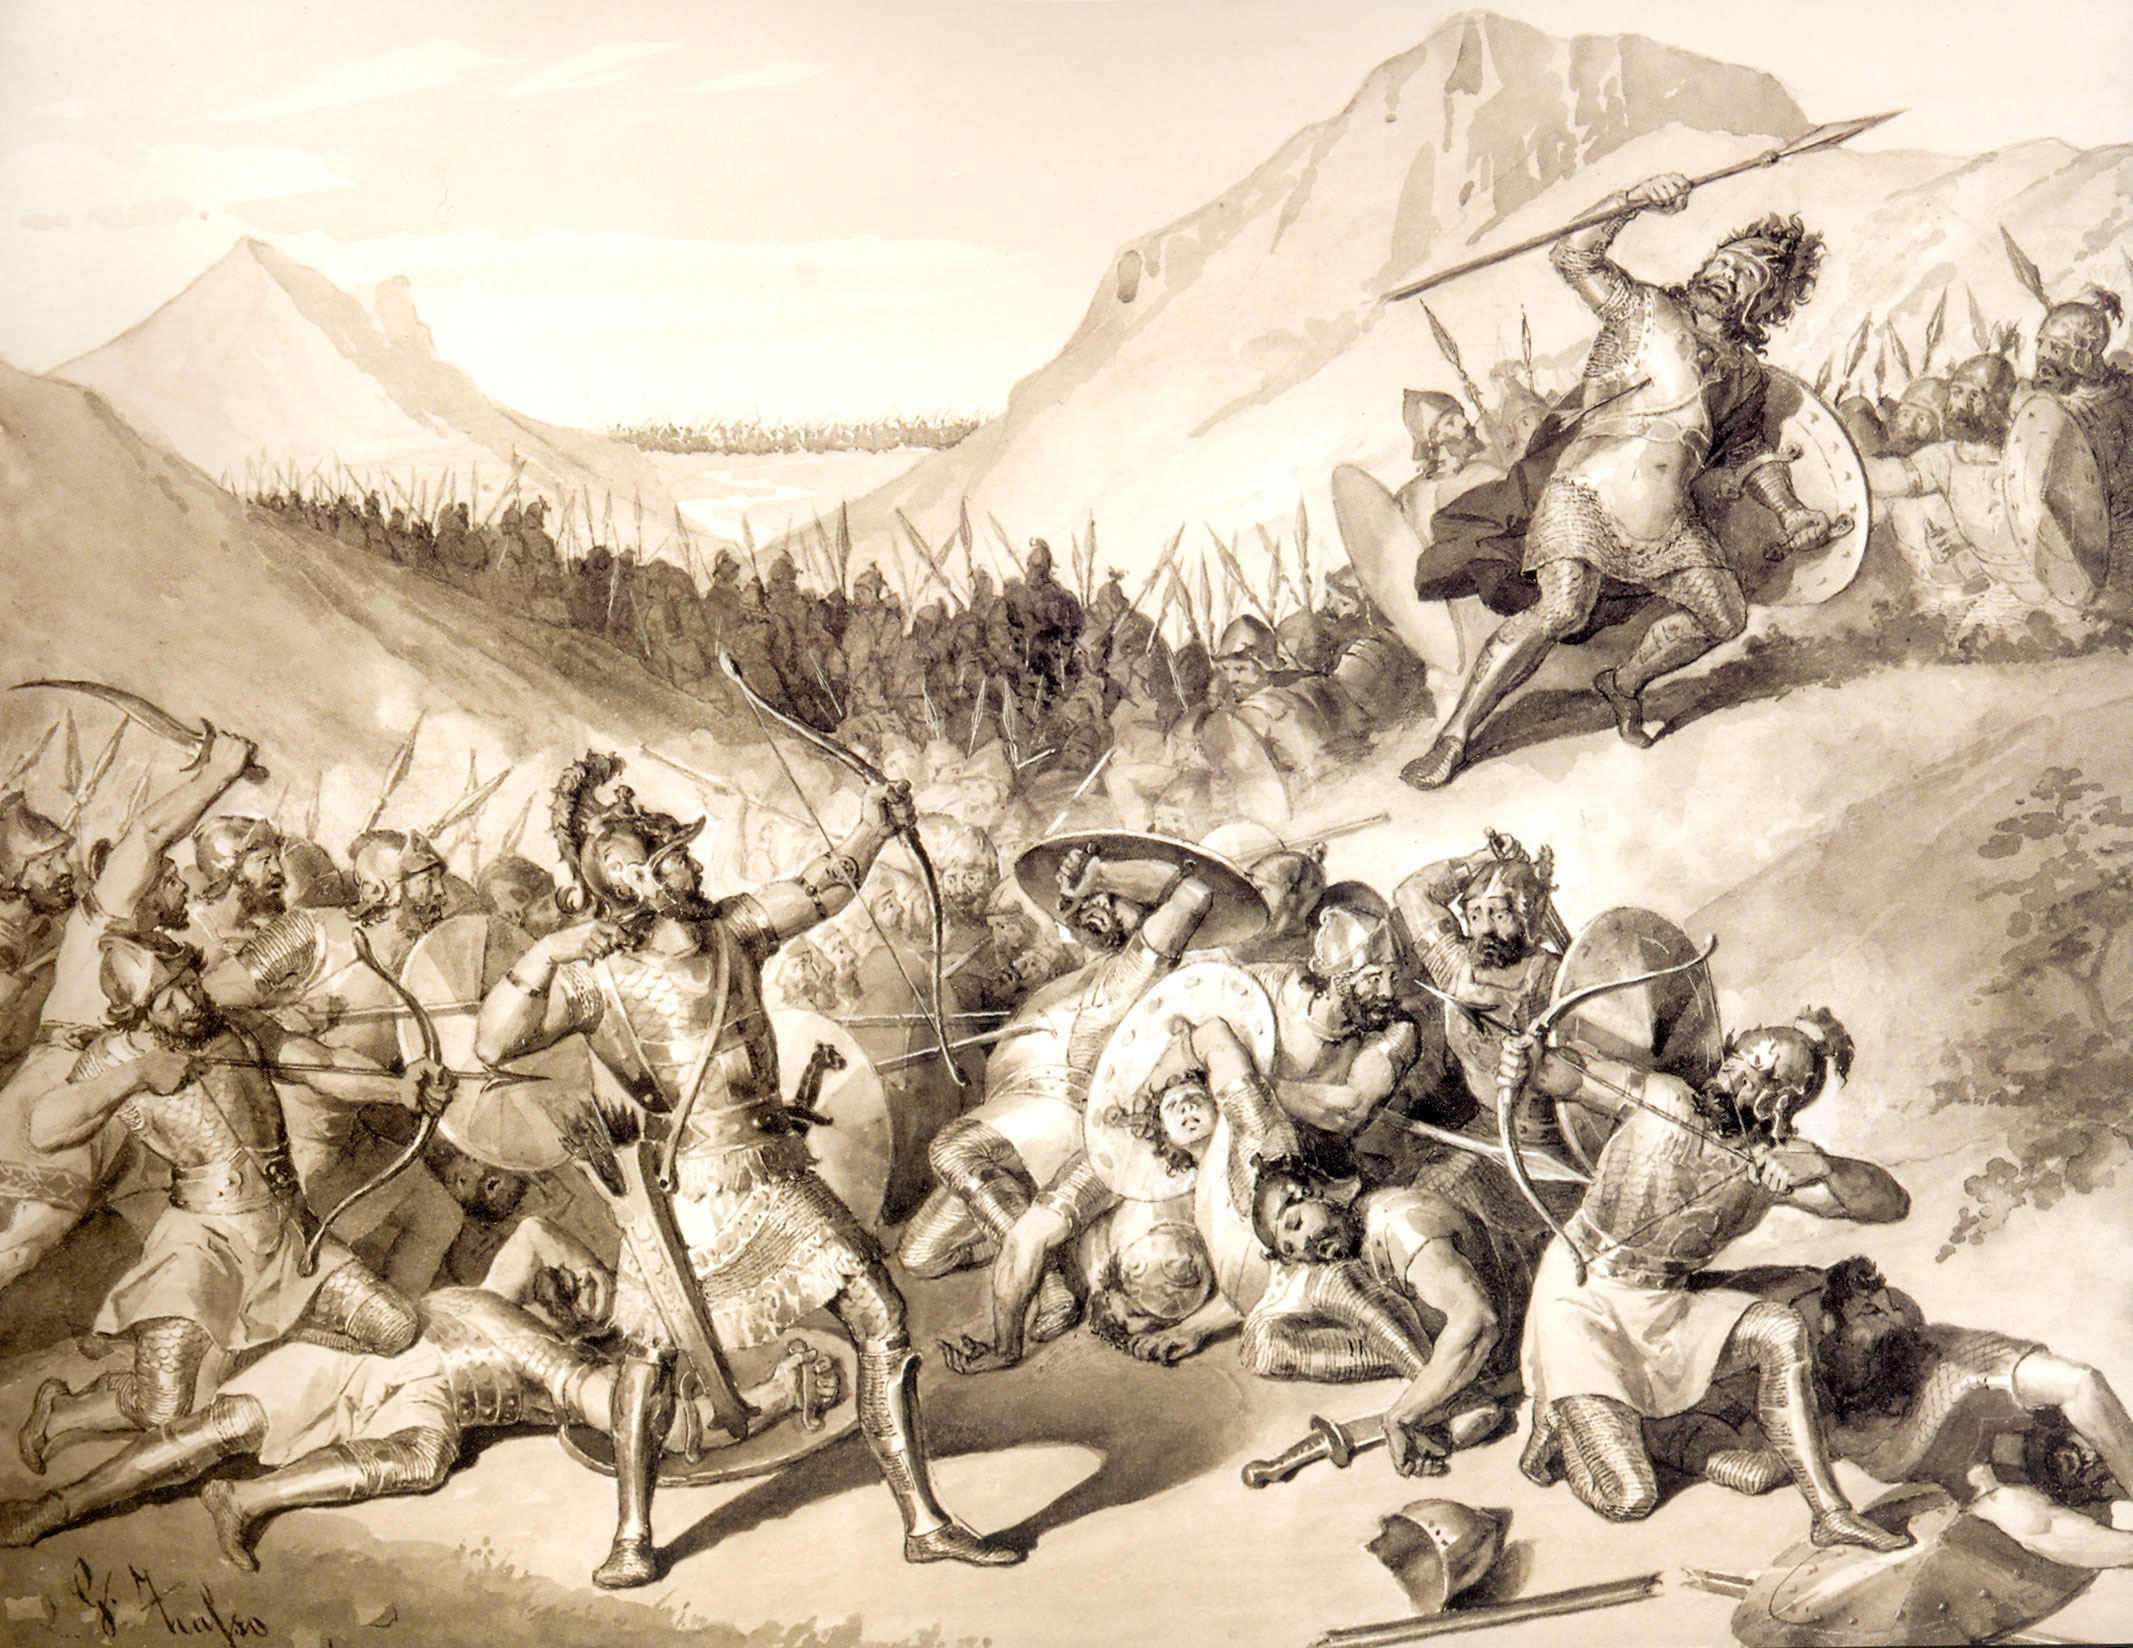 A painting portraying Hayk's victory over Bel by the Italian Giuliano Zasso (1833-1889)